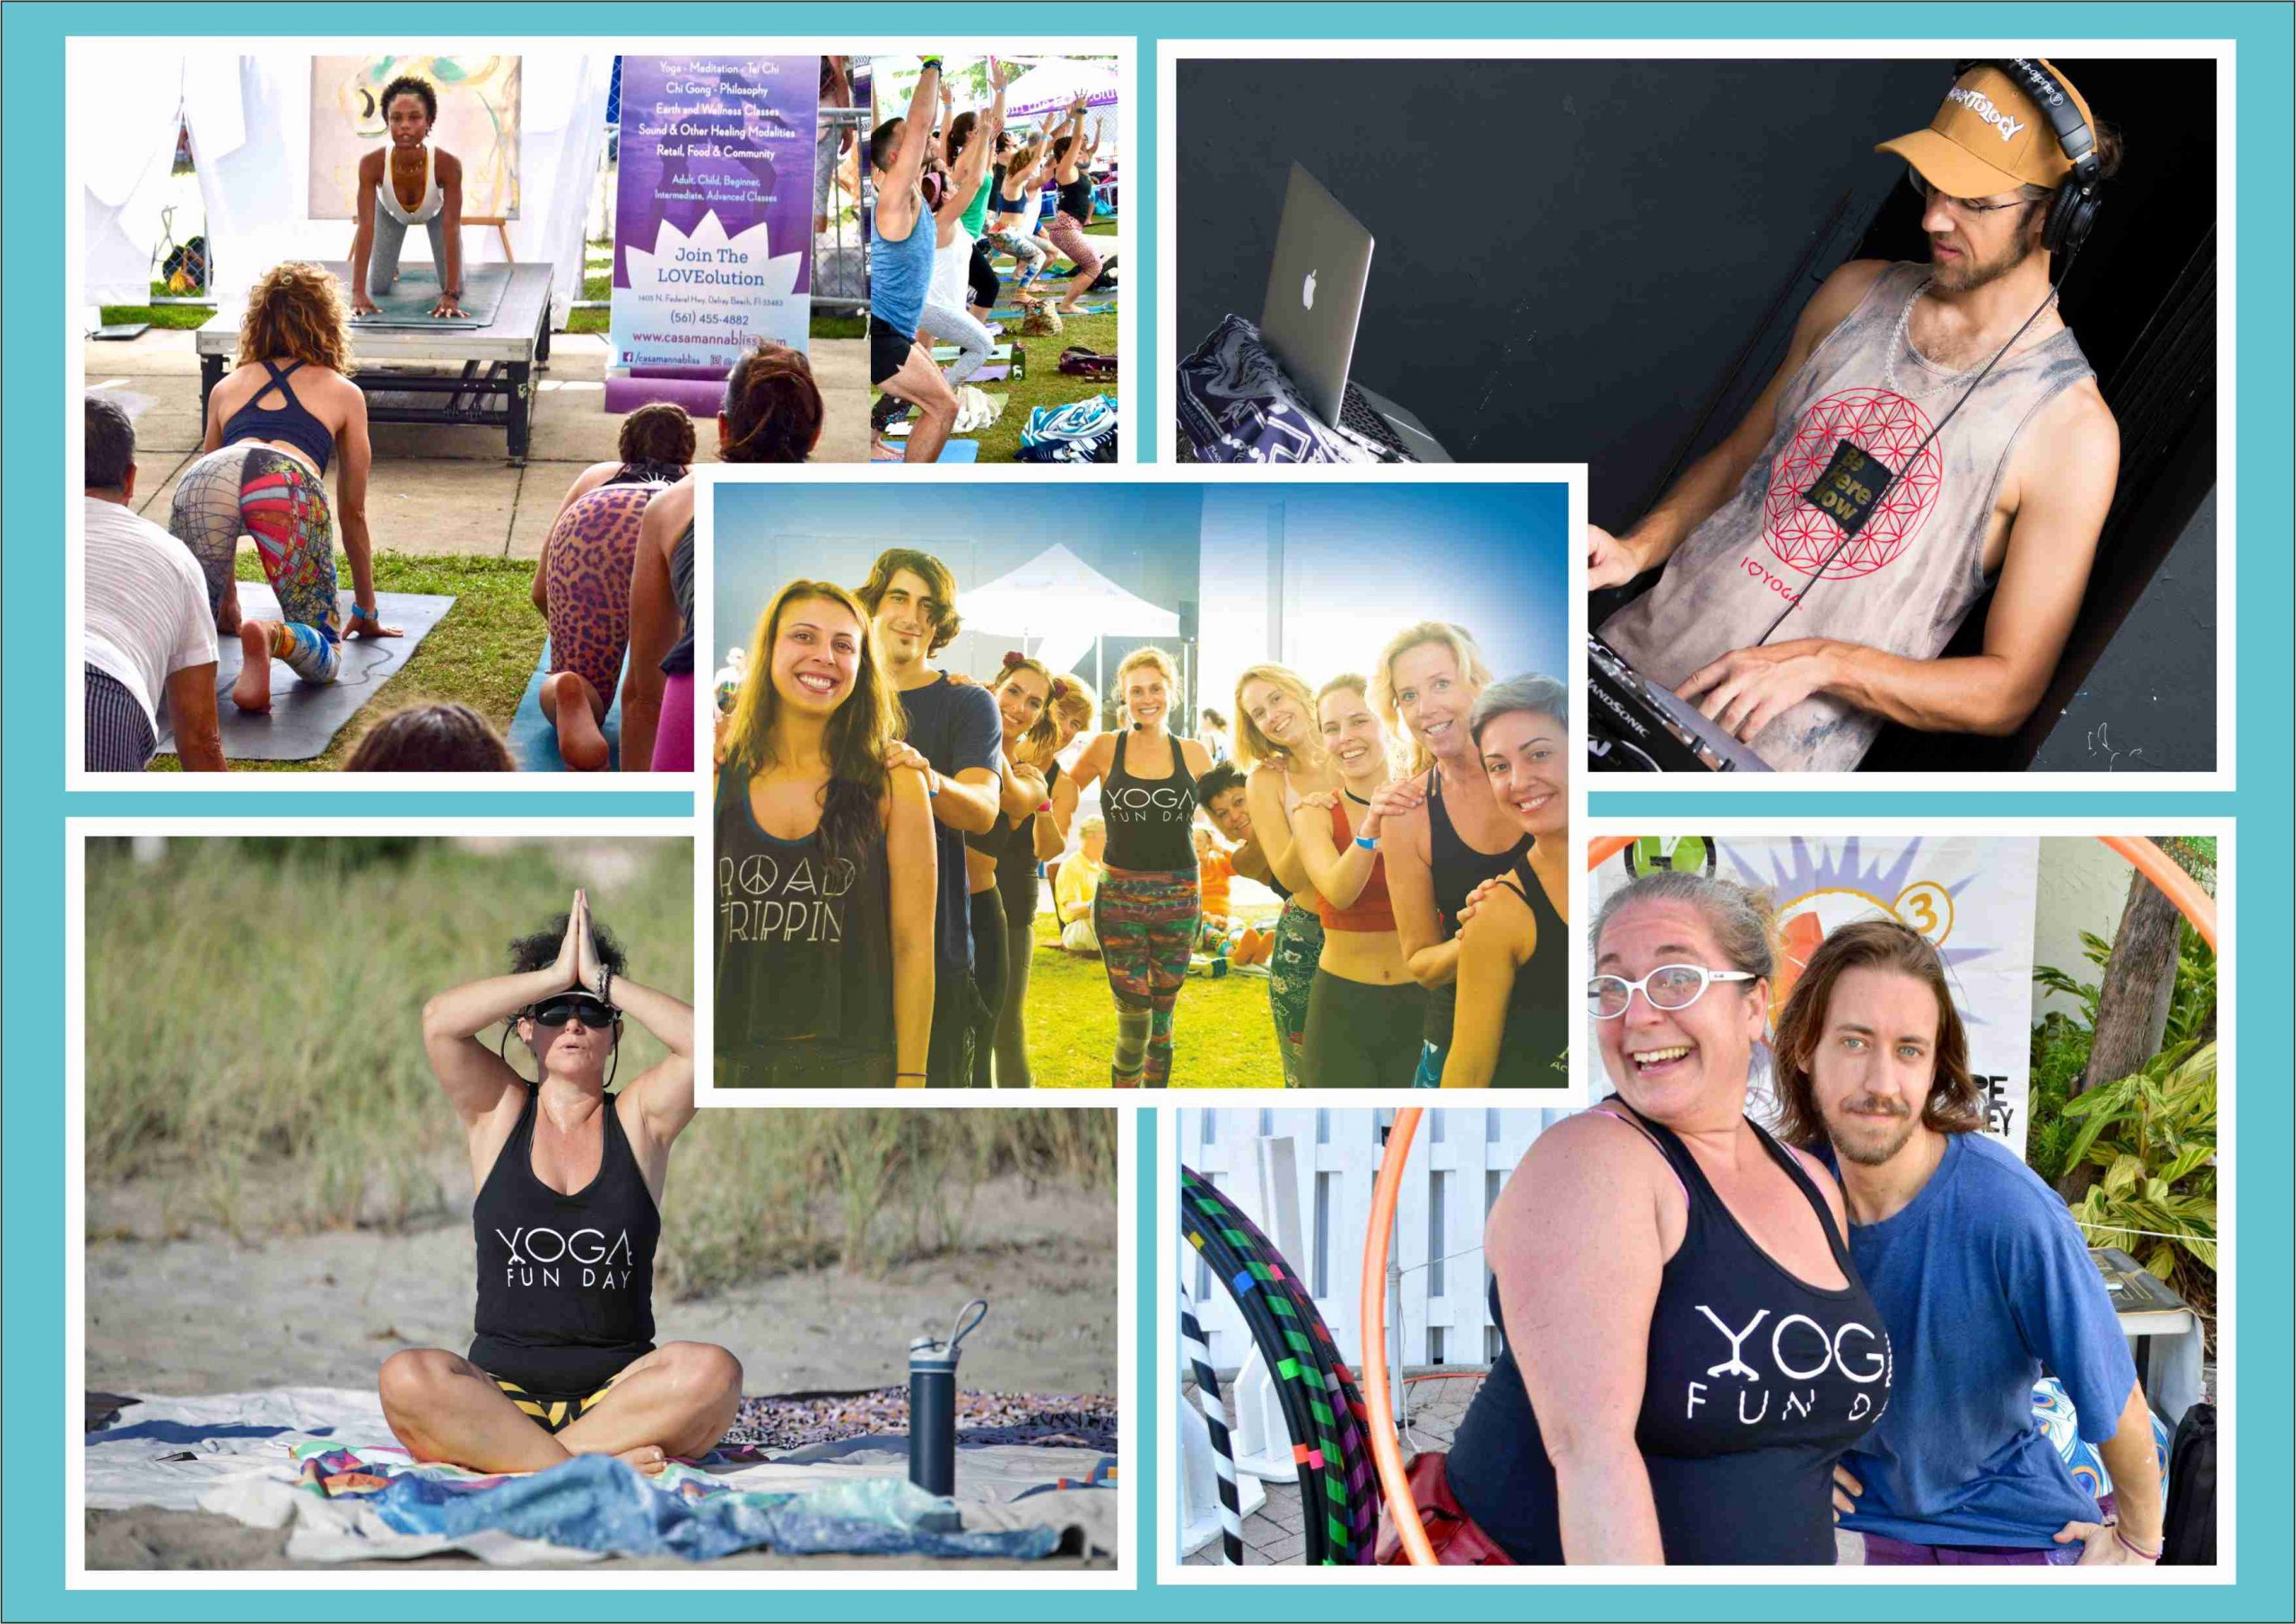 The Premiere Yoga Festival in South Florida